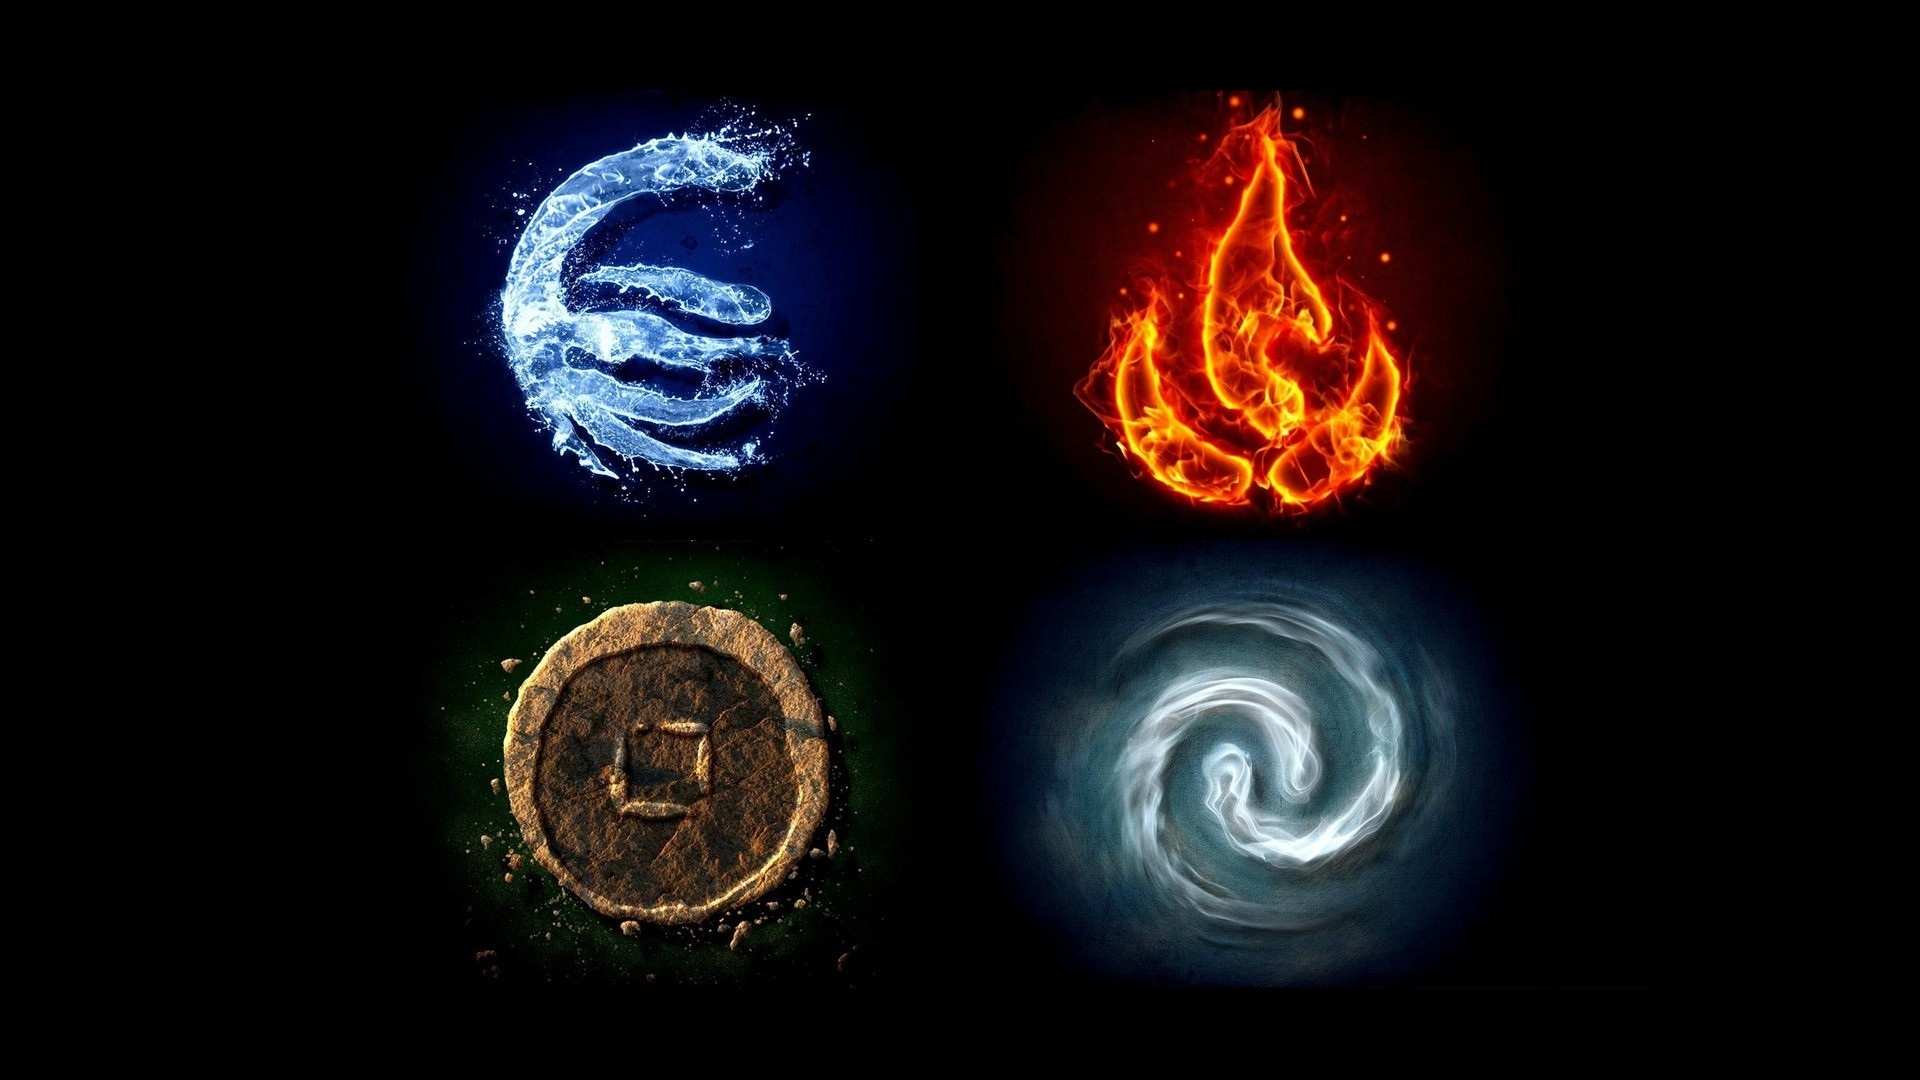 112 avatar: the last airbender hd wallpapers | background images